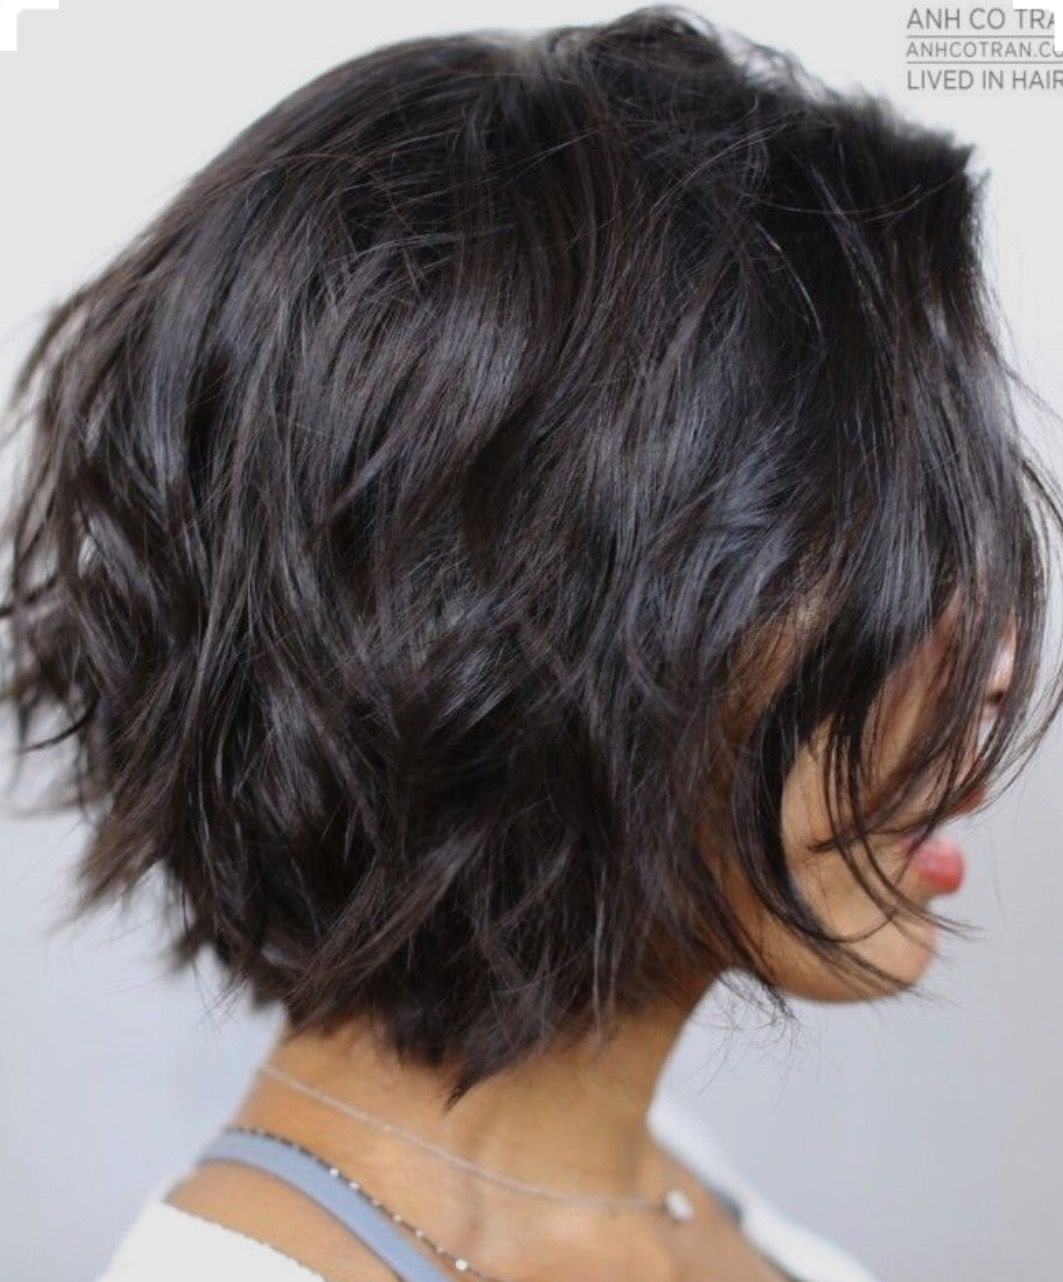 Pin by chana grill on hairs pinterest hair style hair cuts and